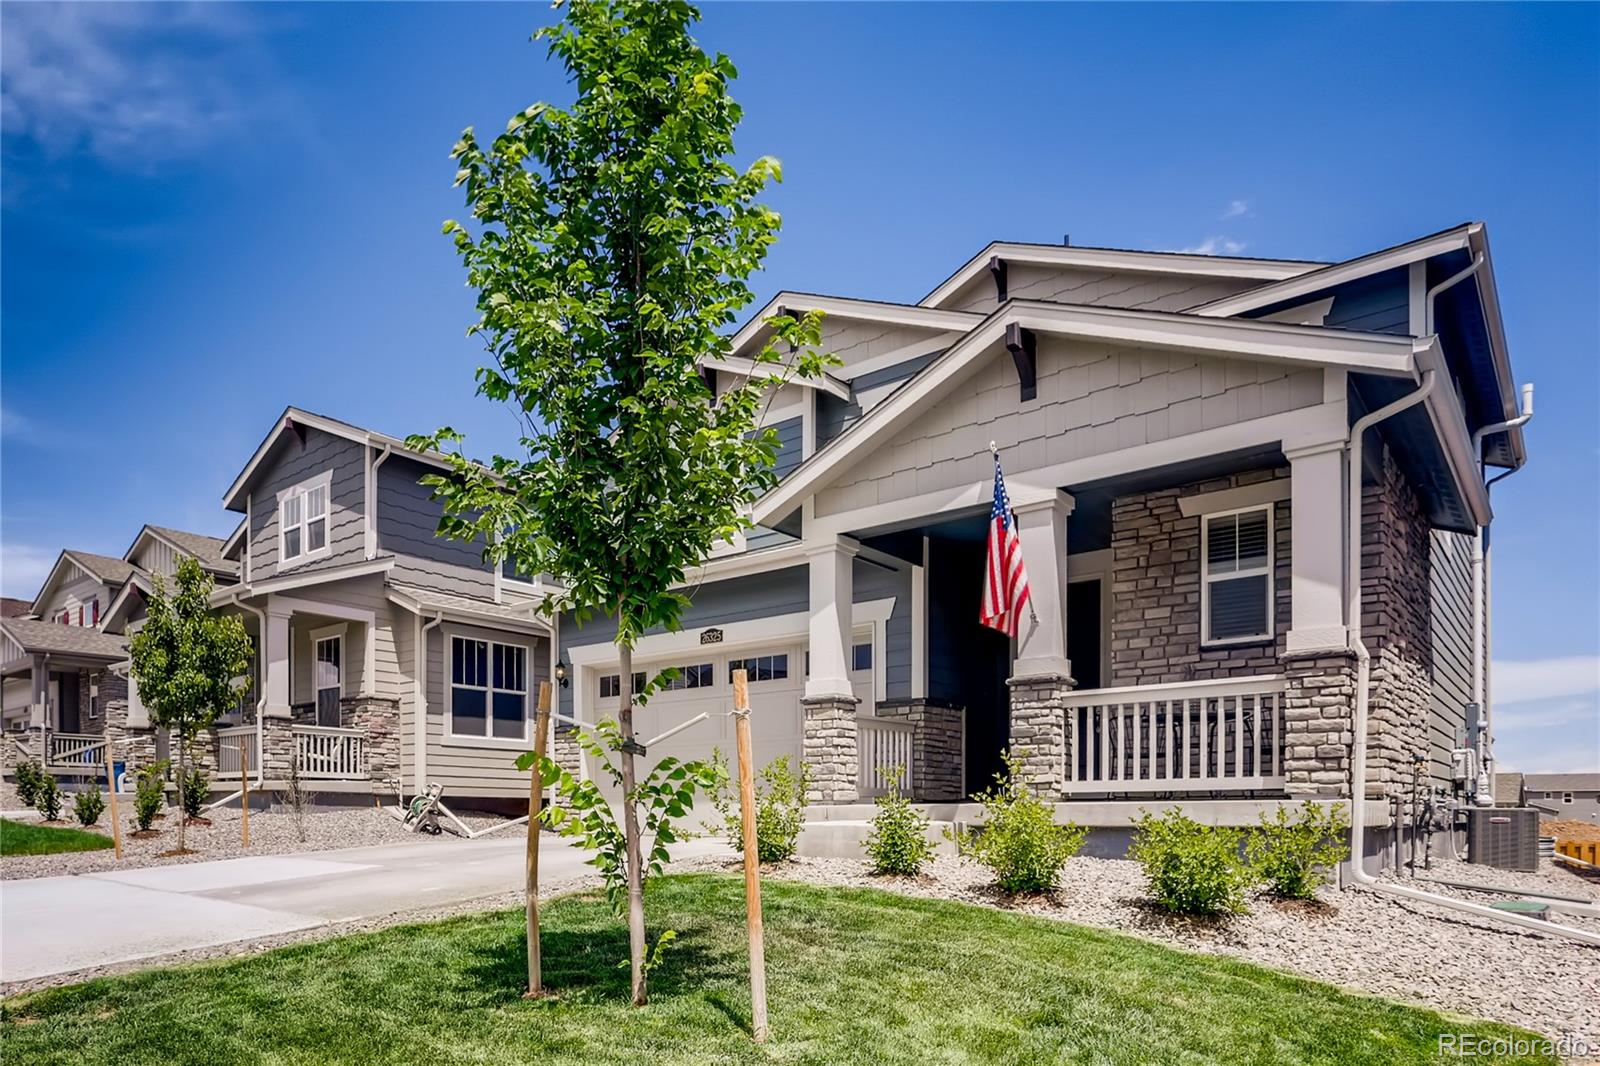 MLS# 2145354 - 1 - 26325 E Canal Place, Aurora, CO 80018